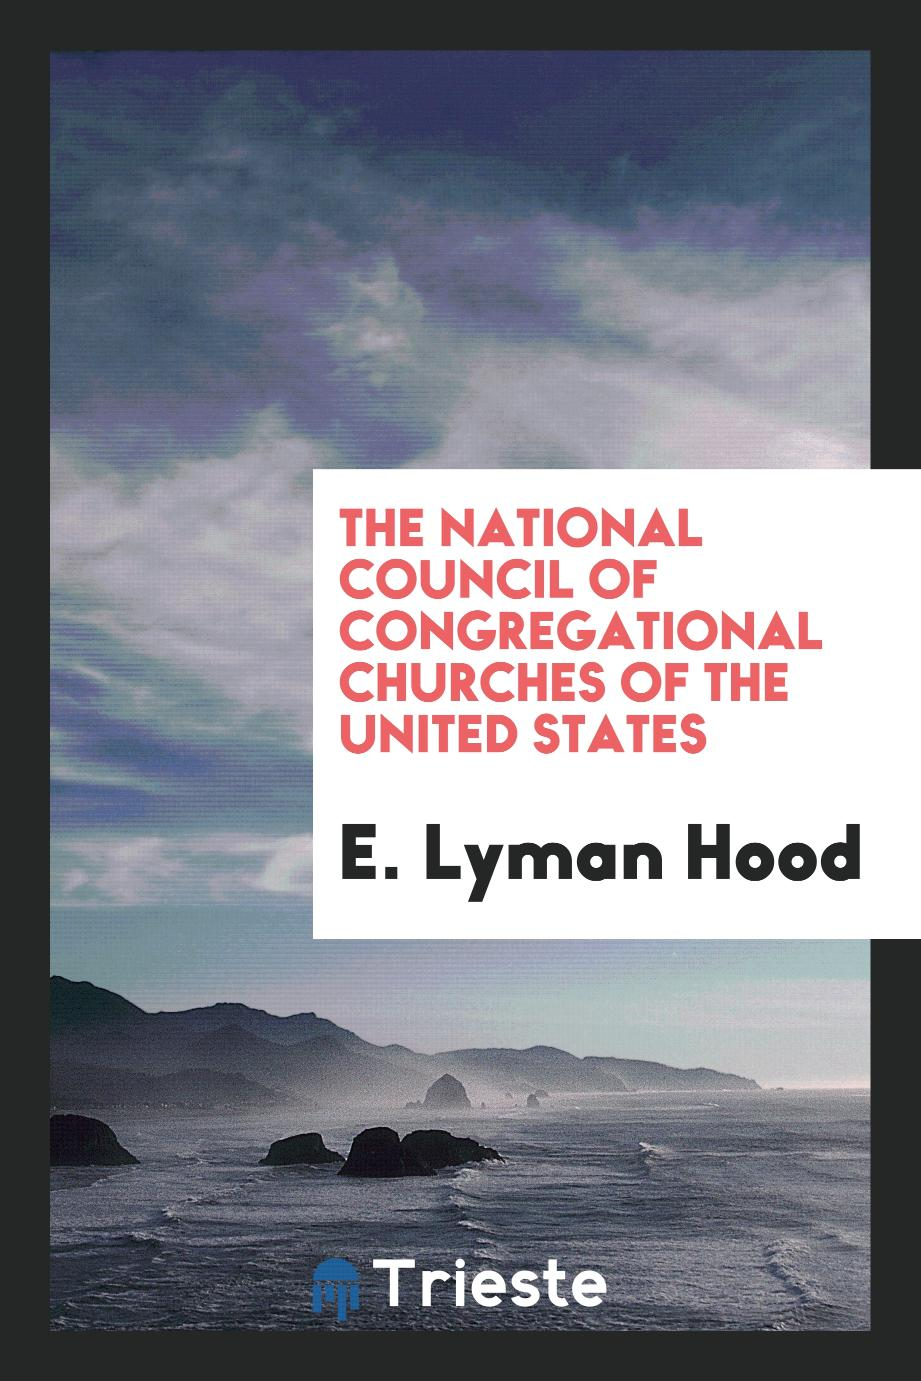 The National Council of Congregational Churches of the United States